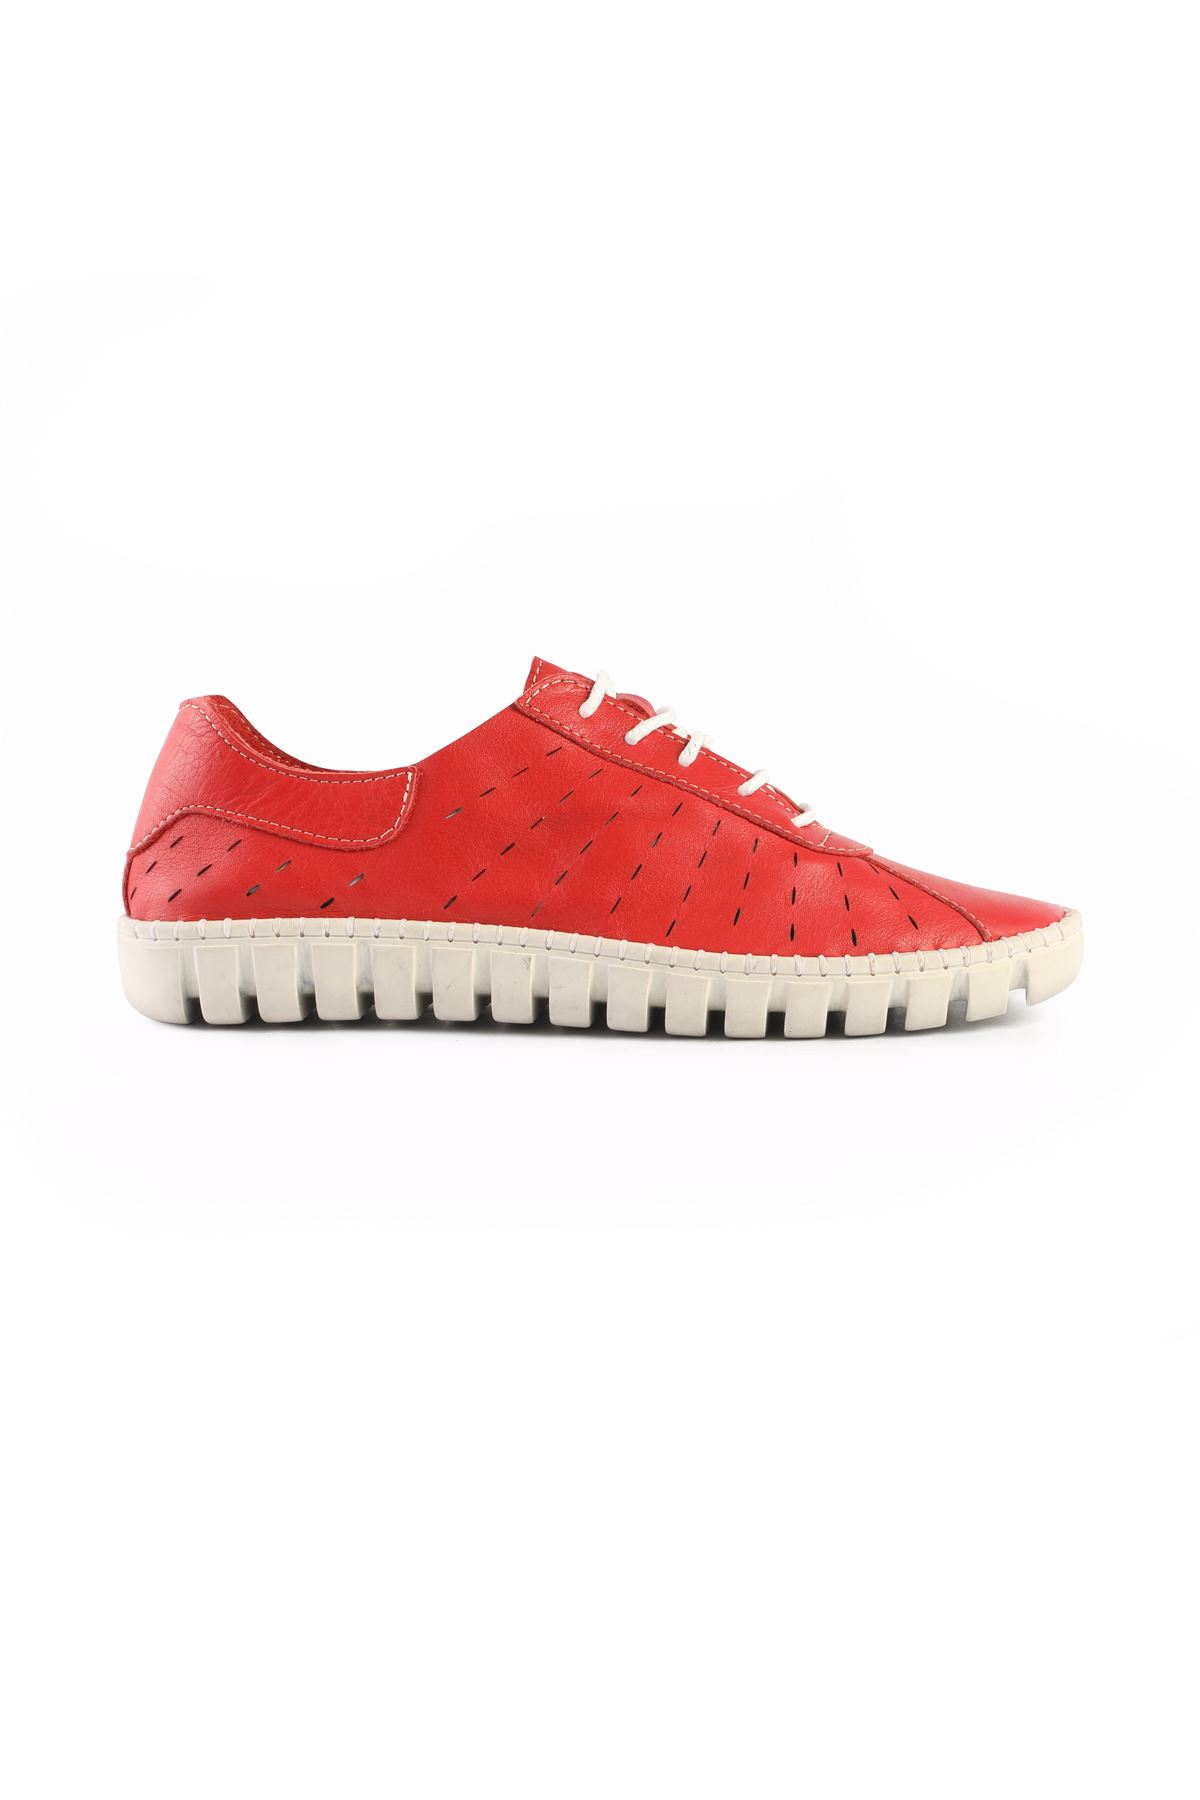 Libero AH6020 Red Casual Shoes